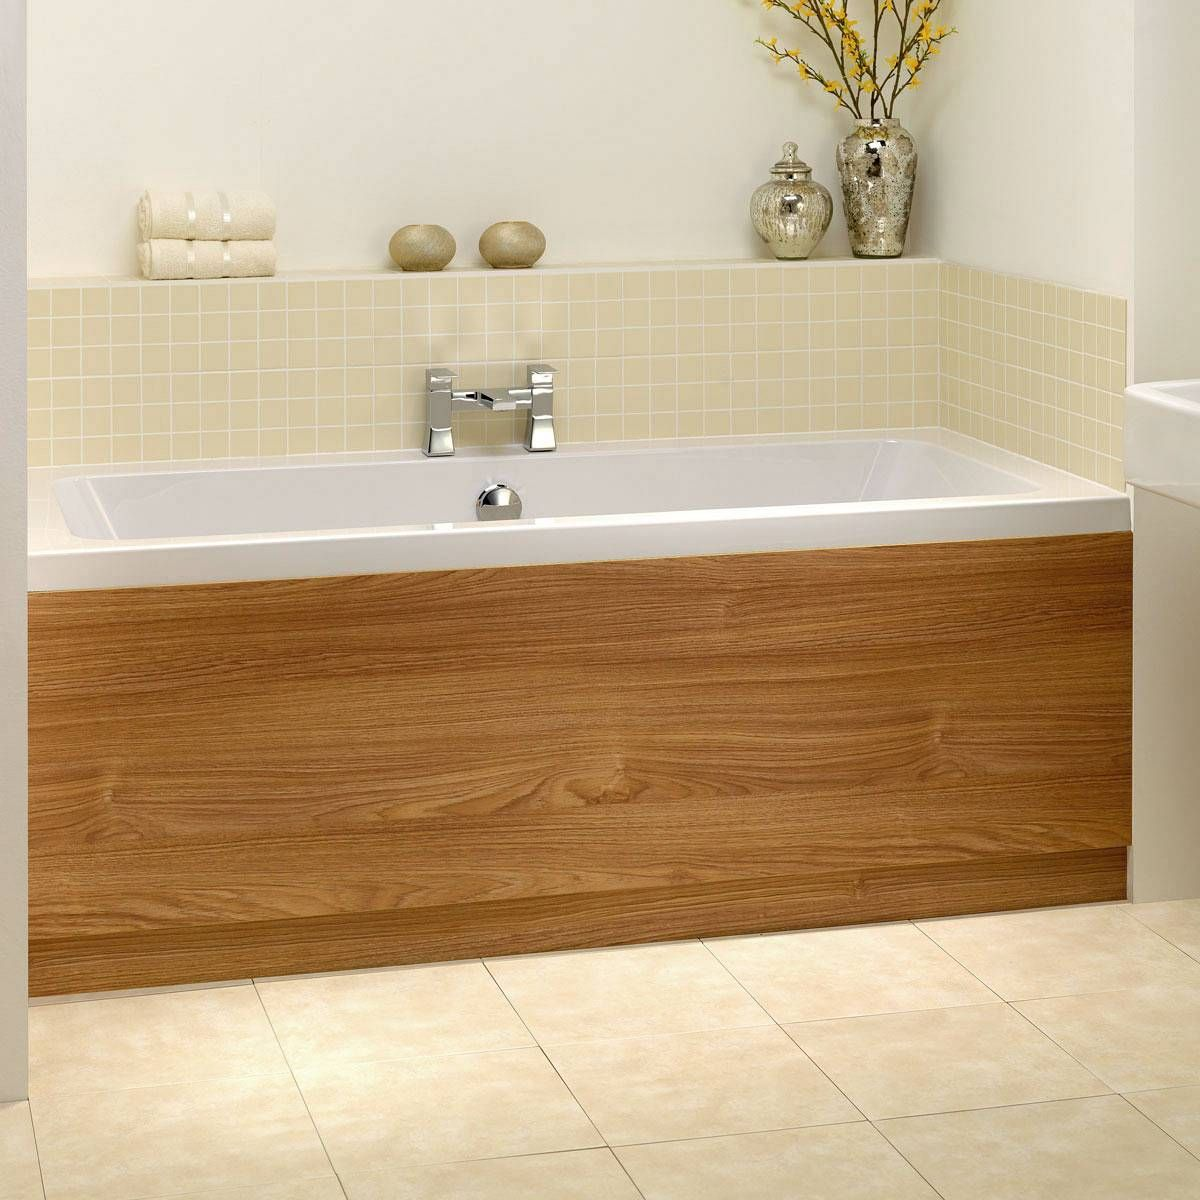 oak wooden bath panel 1700 victoria 49 or in white. Black Bedroom Furniture Sets. Home Design Ideas